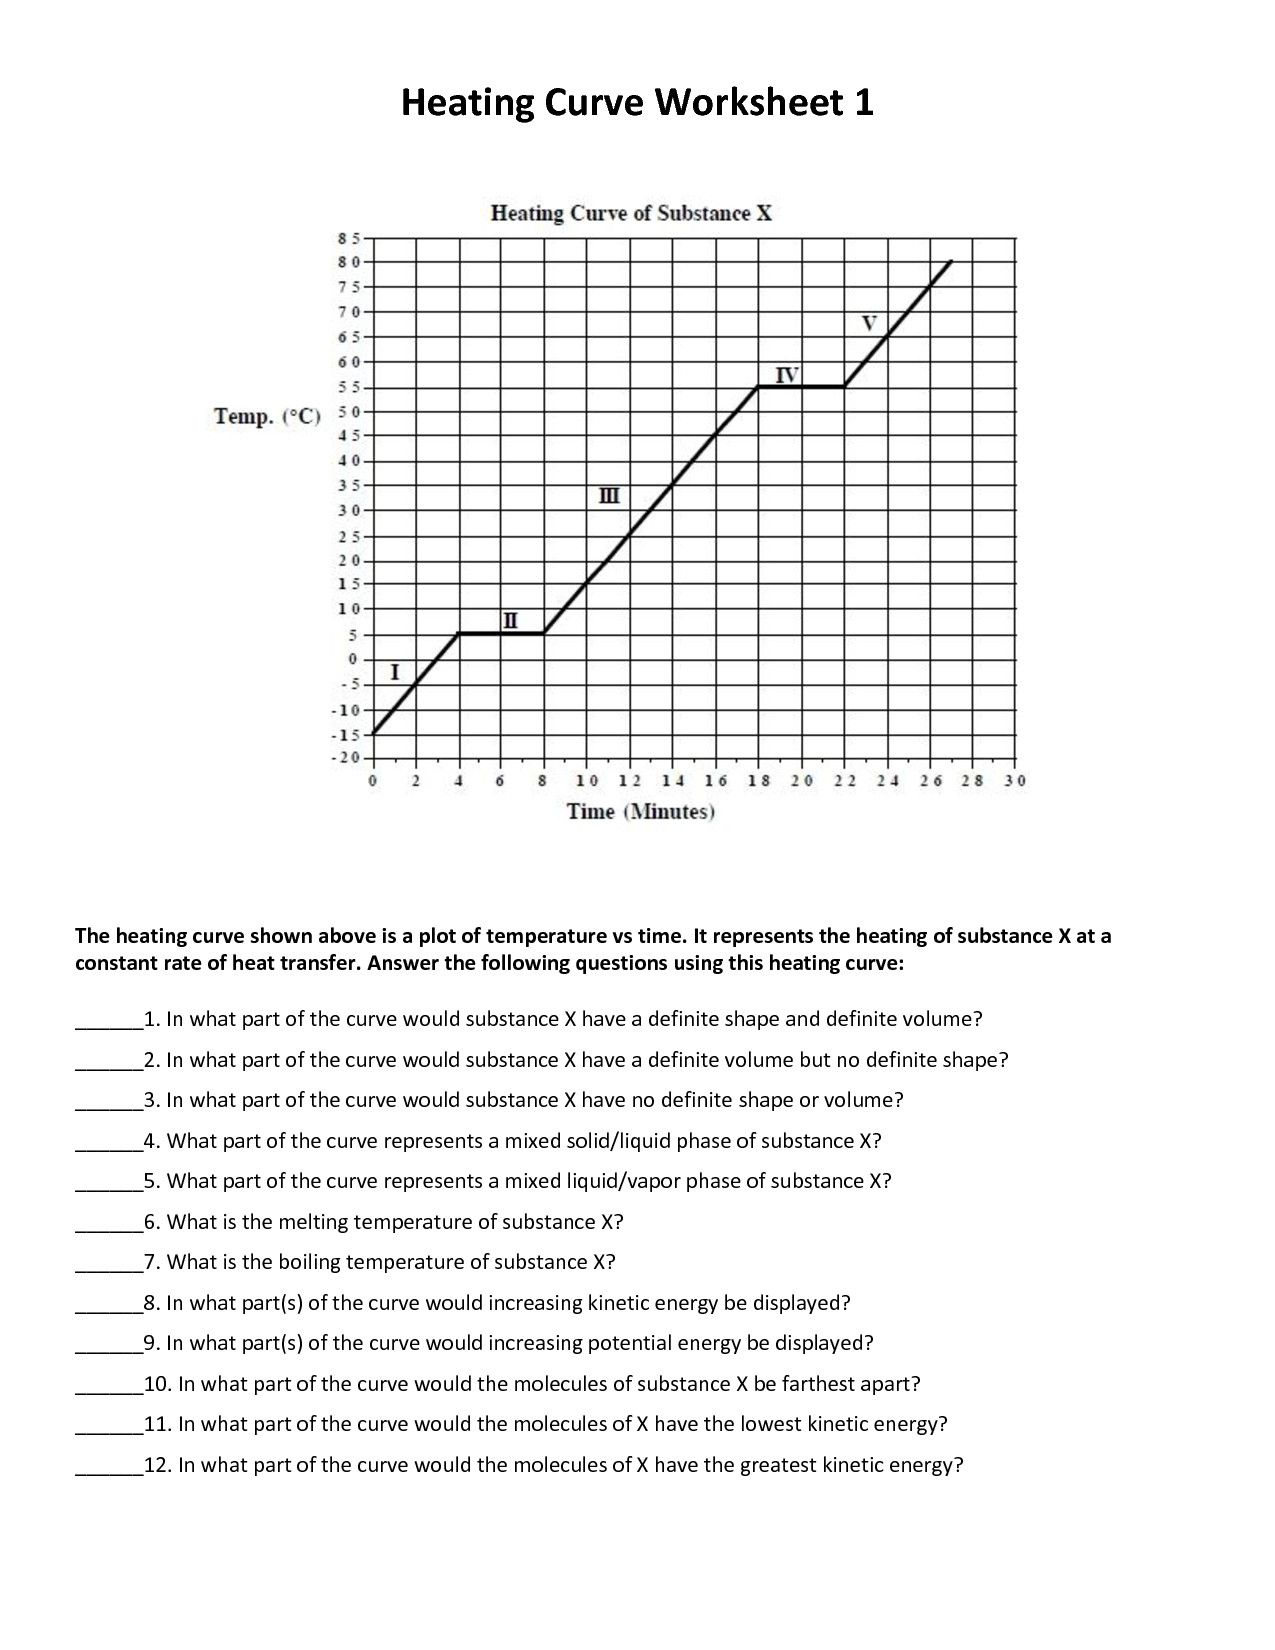 Formalrecent Chemistry Heating Curve Worksheet Answers